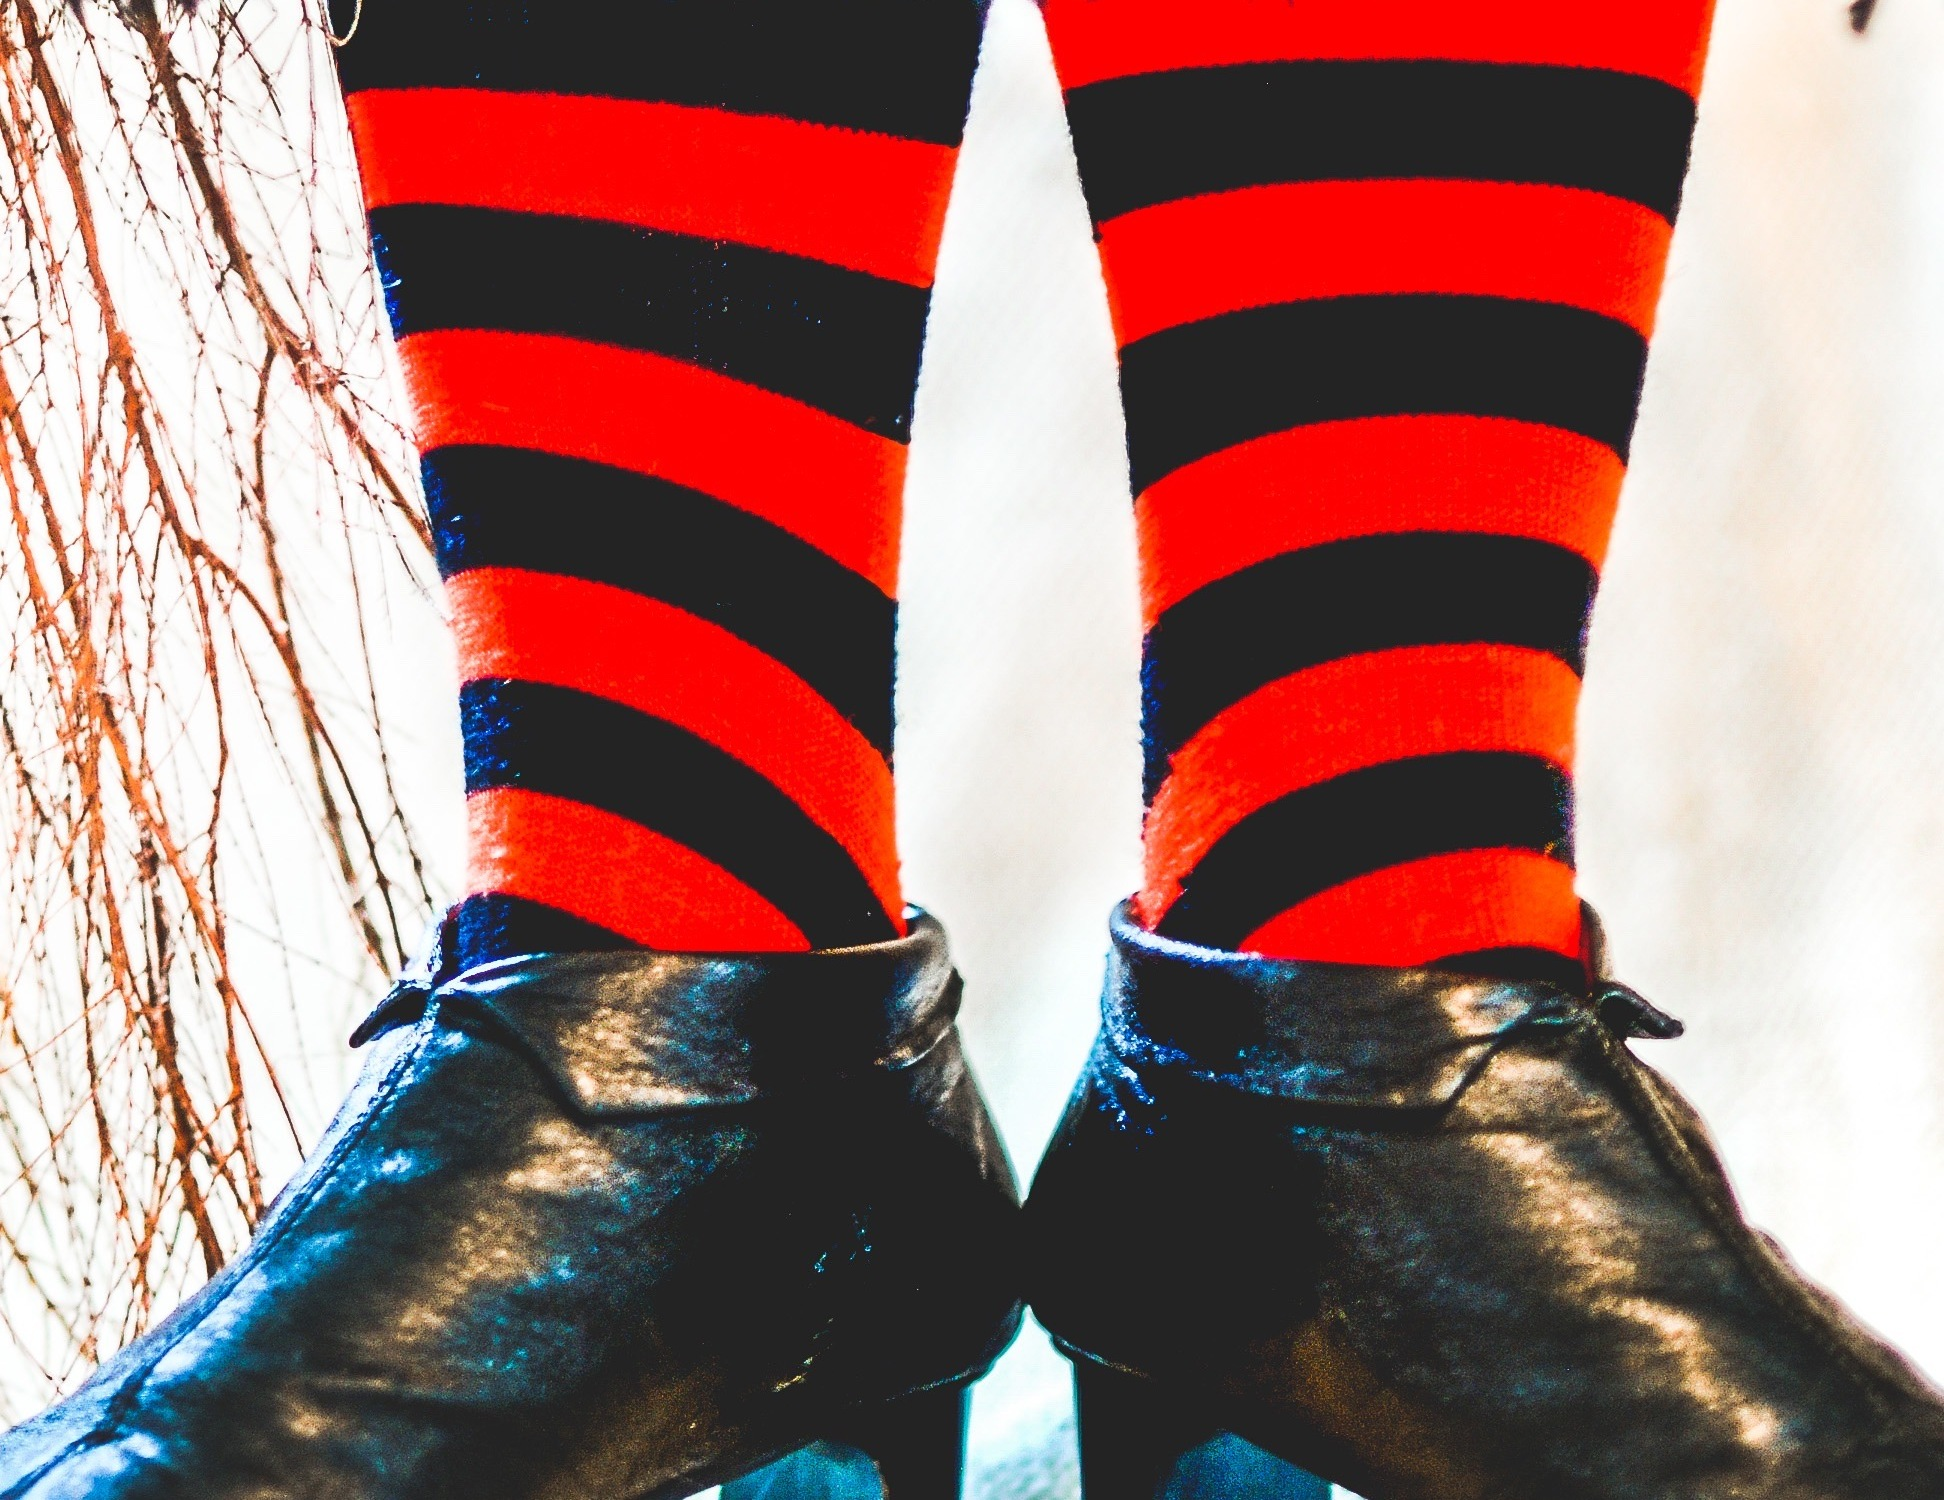 Image of black shoes and striped stockings